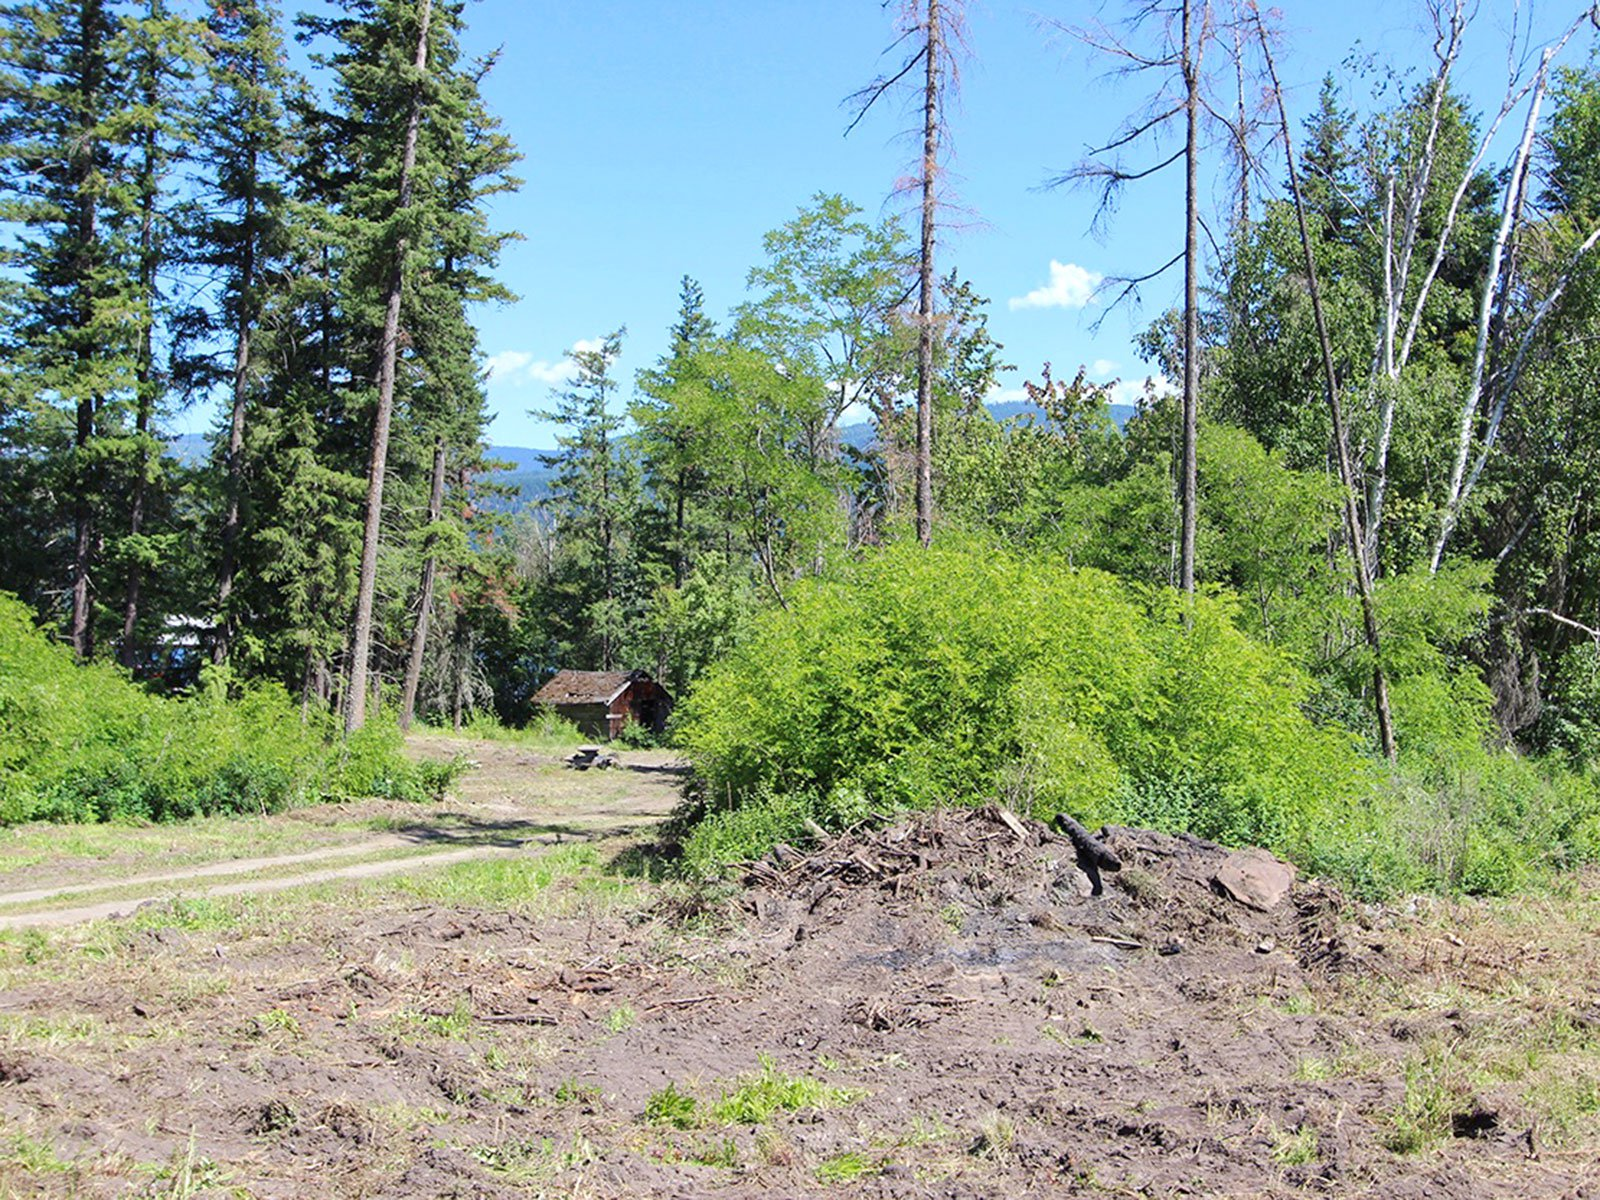 Photo 30: Photos: 663 Waverly Park Frontage Road in Sorrento, BC: Land Only for sale (Sorrento)  : MLS®# 10186241